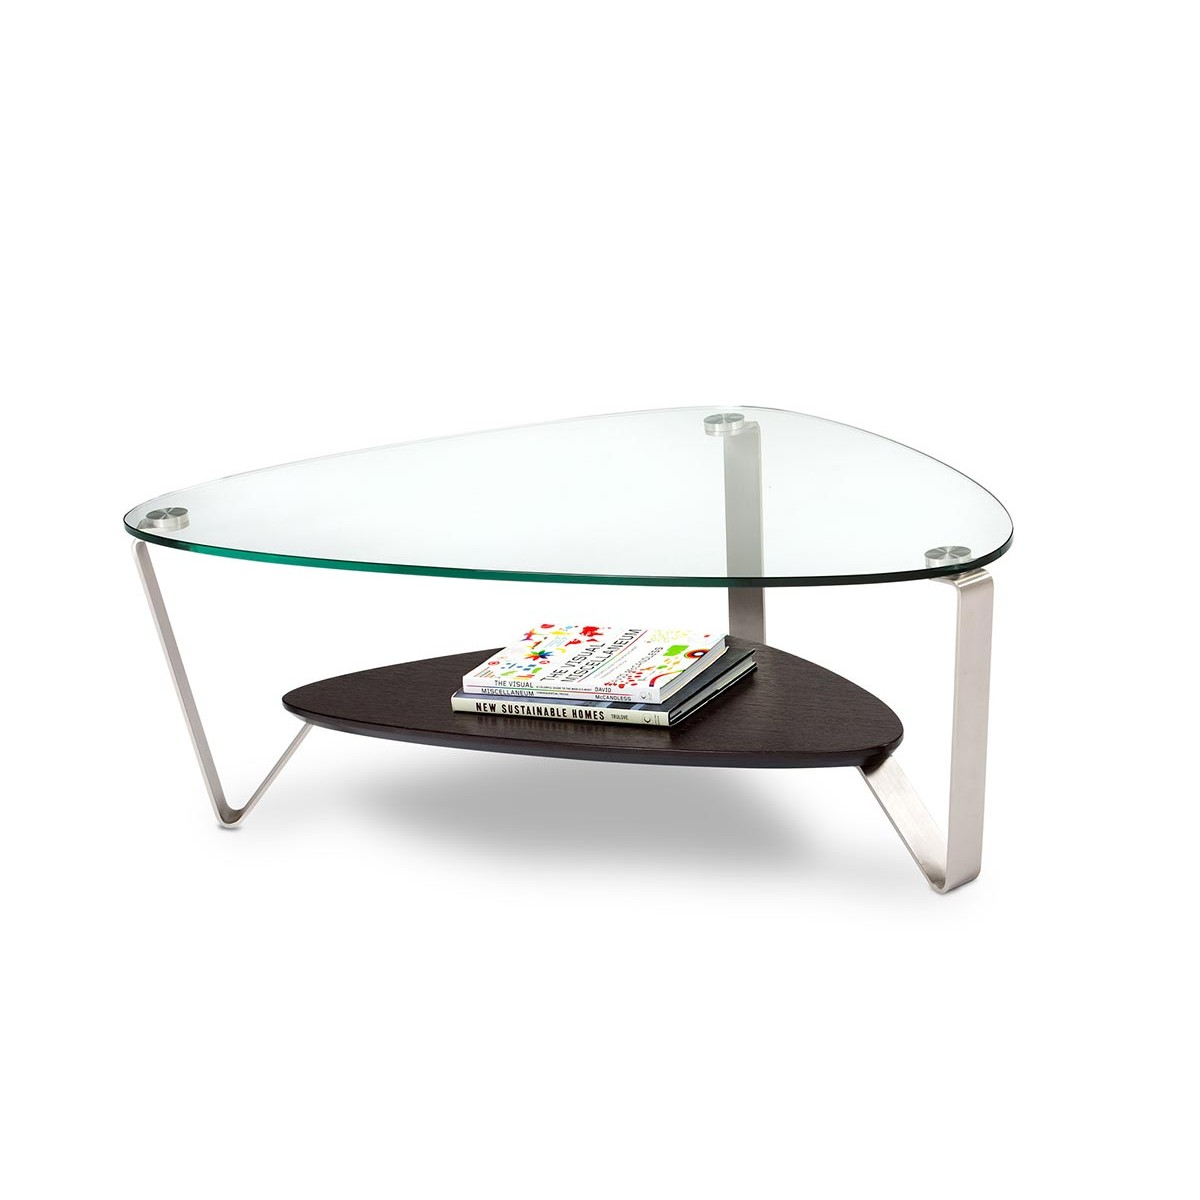 coffee tables accent living furniture danco modern bdi dino espresso table high all weather patio timber dark wood nest grills with power battery powered hanging lamp marble top